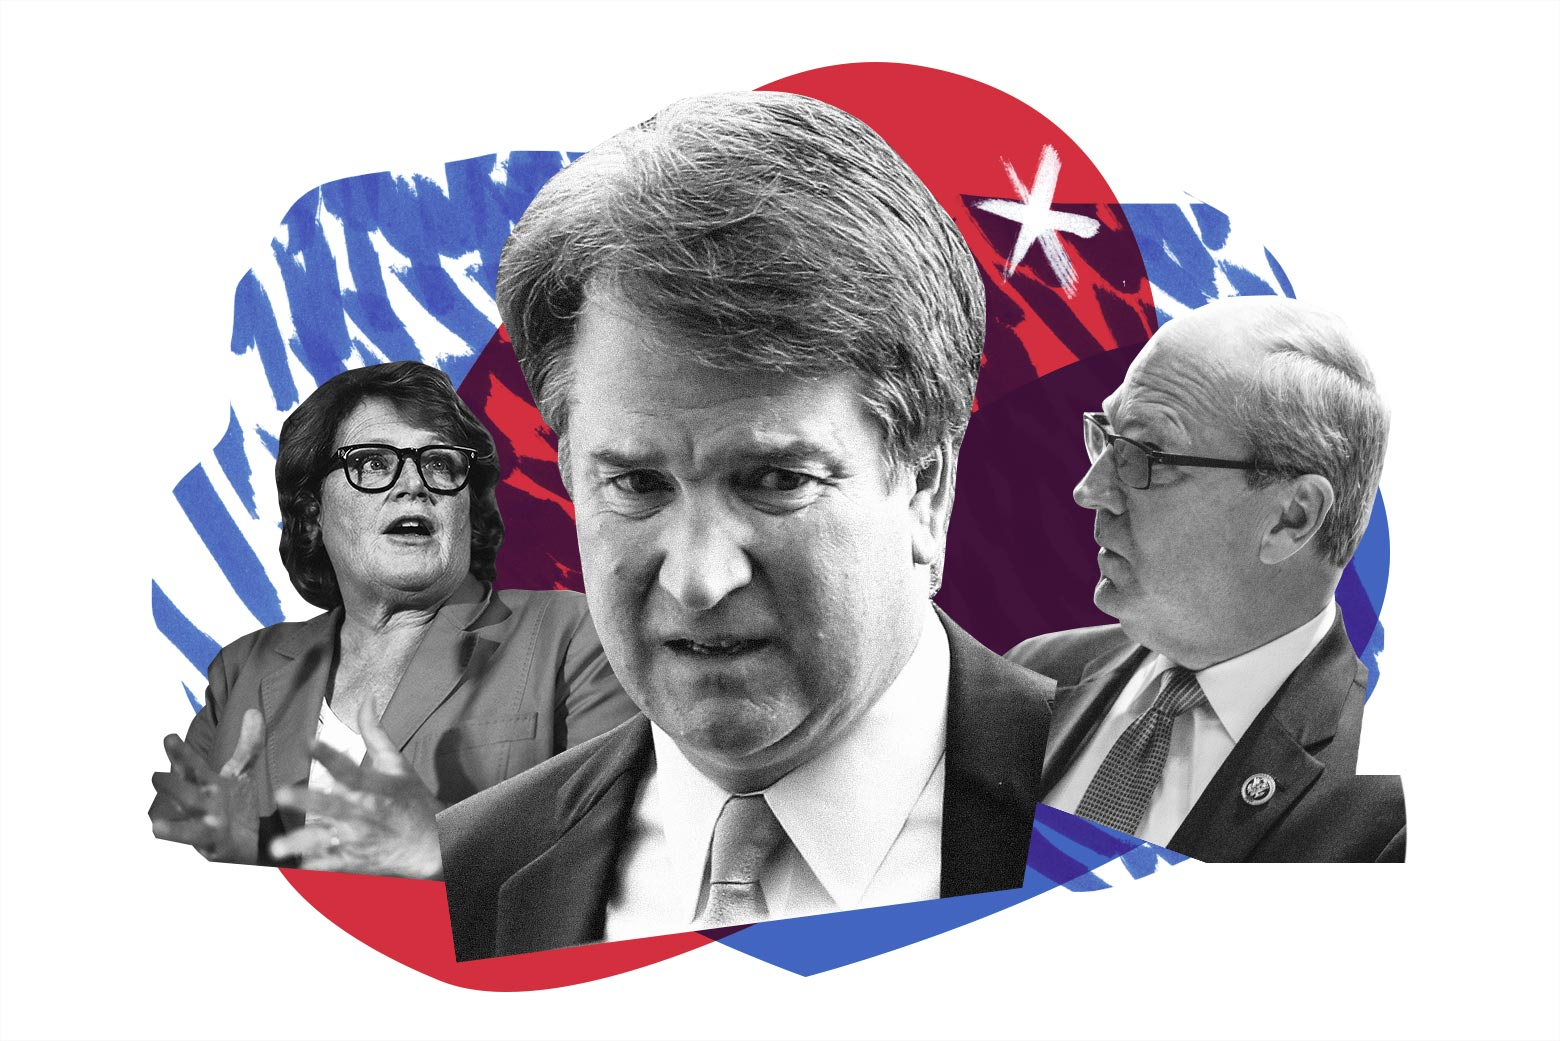 Heidi Heitkamp, Brett Kavanaugh, and Kevin Cramer.